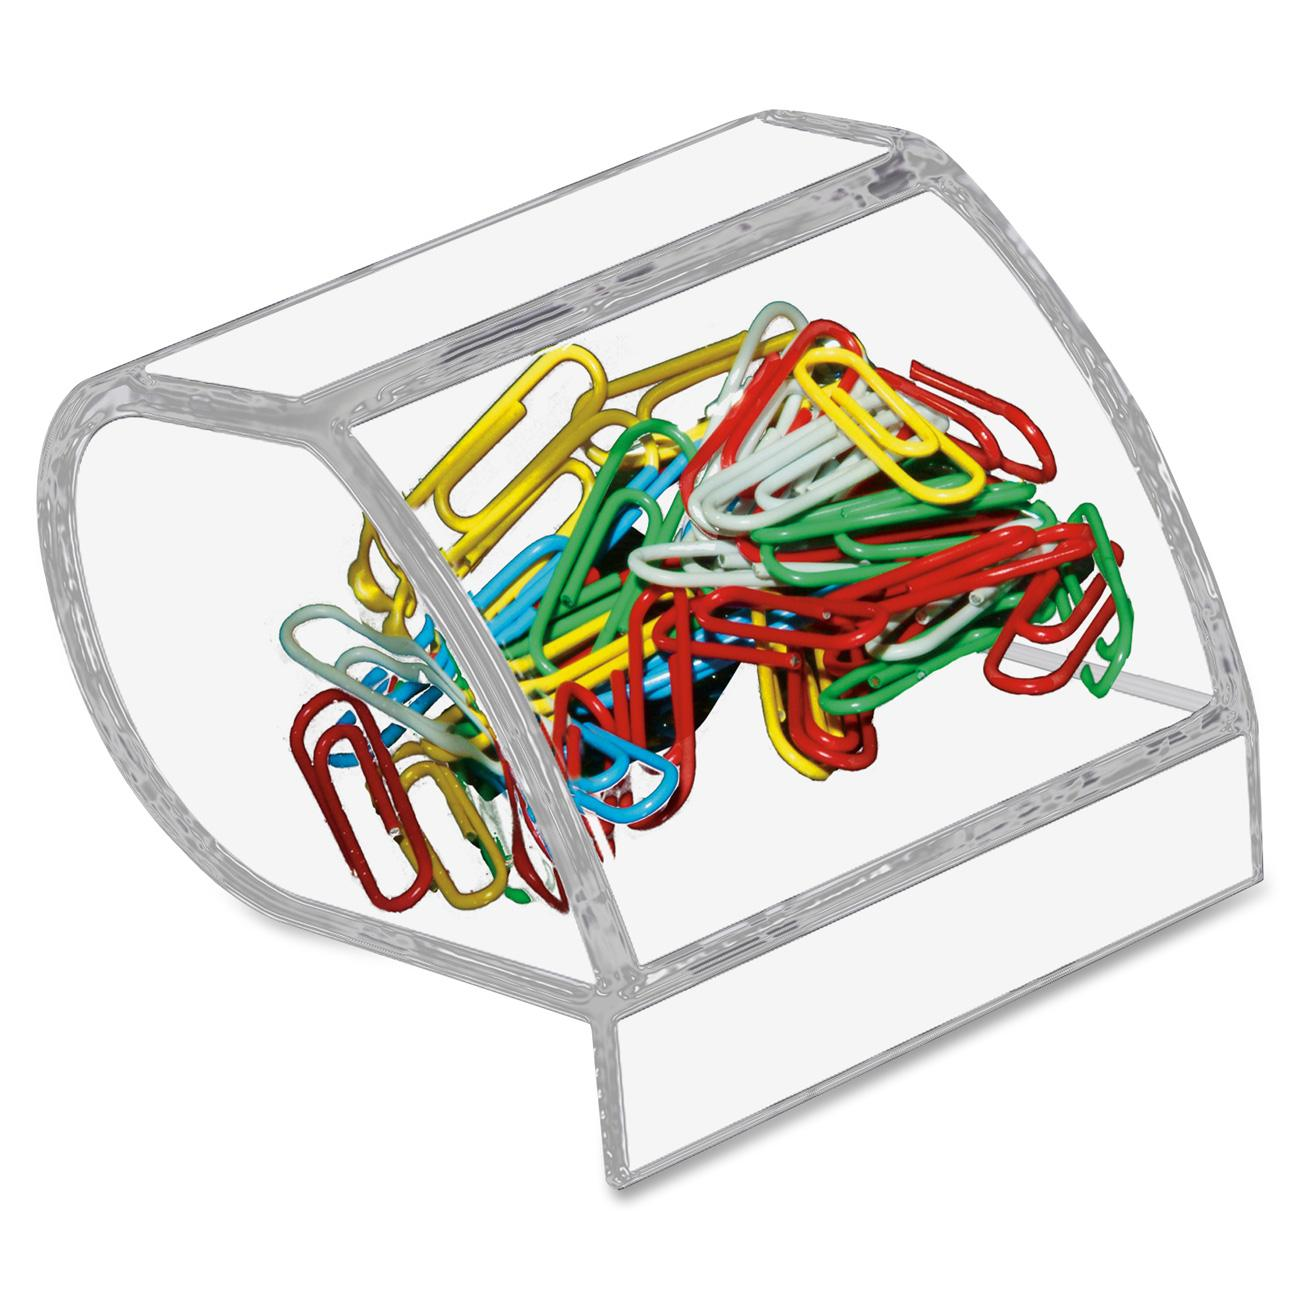 Acrylic Paperclip Holder